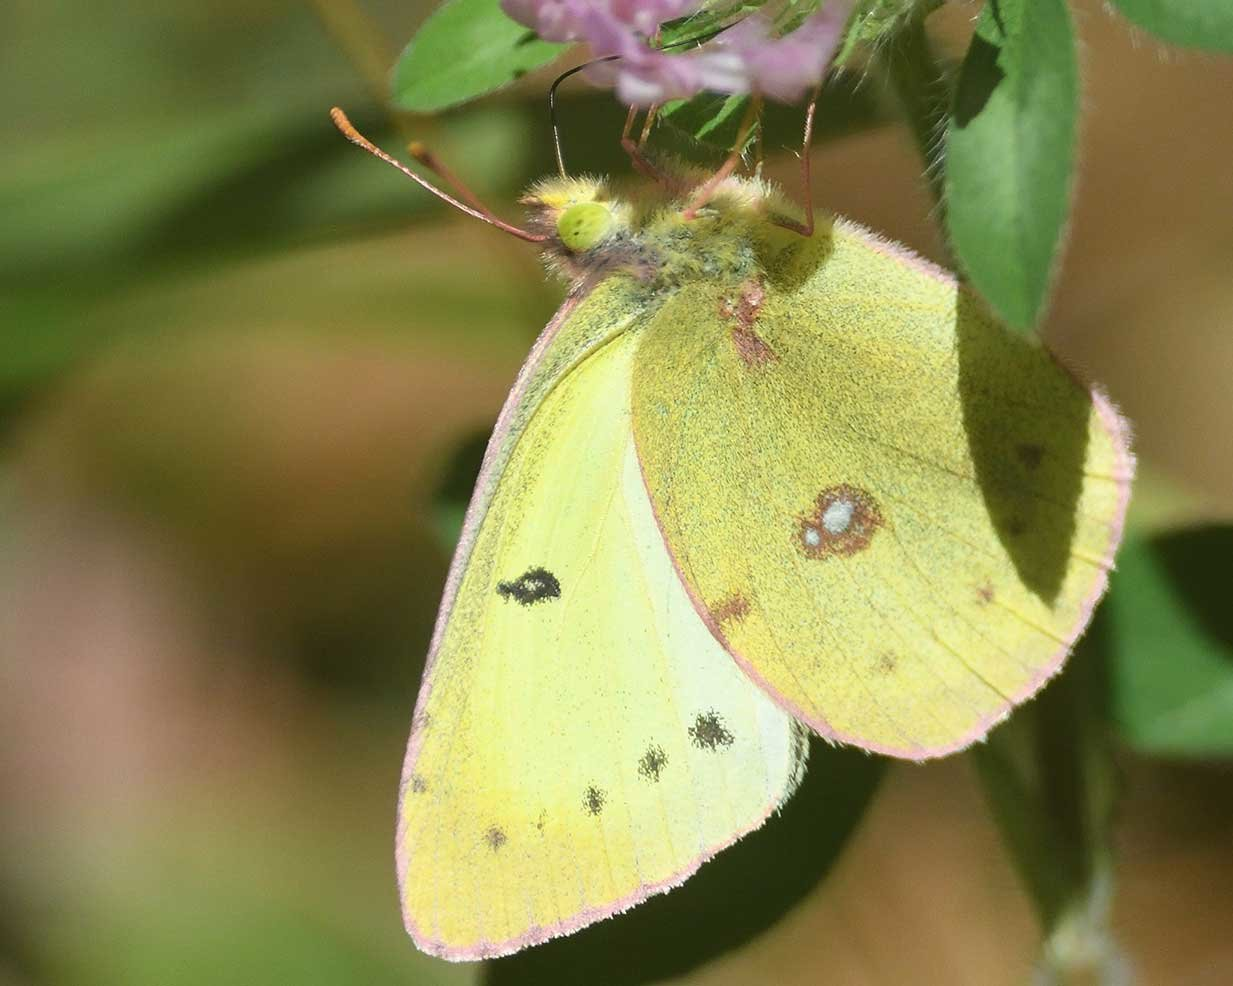 The clouded sulphur is slightly larger than the commonly seen cabbage white butterfly. Clouded sulphurs can be seen on a variety of wild plants and may be one of the most common butterflies in your yard. They have been seen well into November during milder falls.